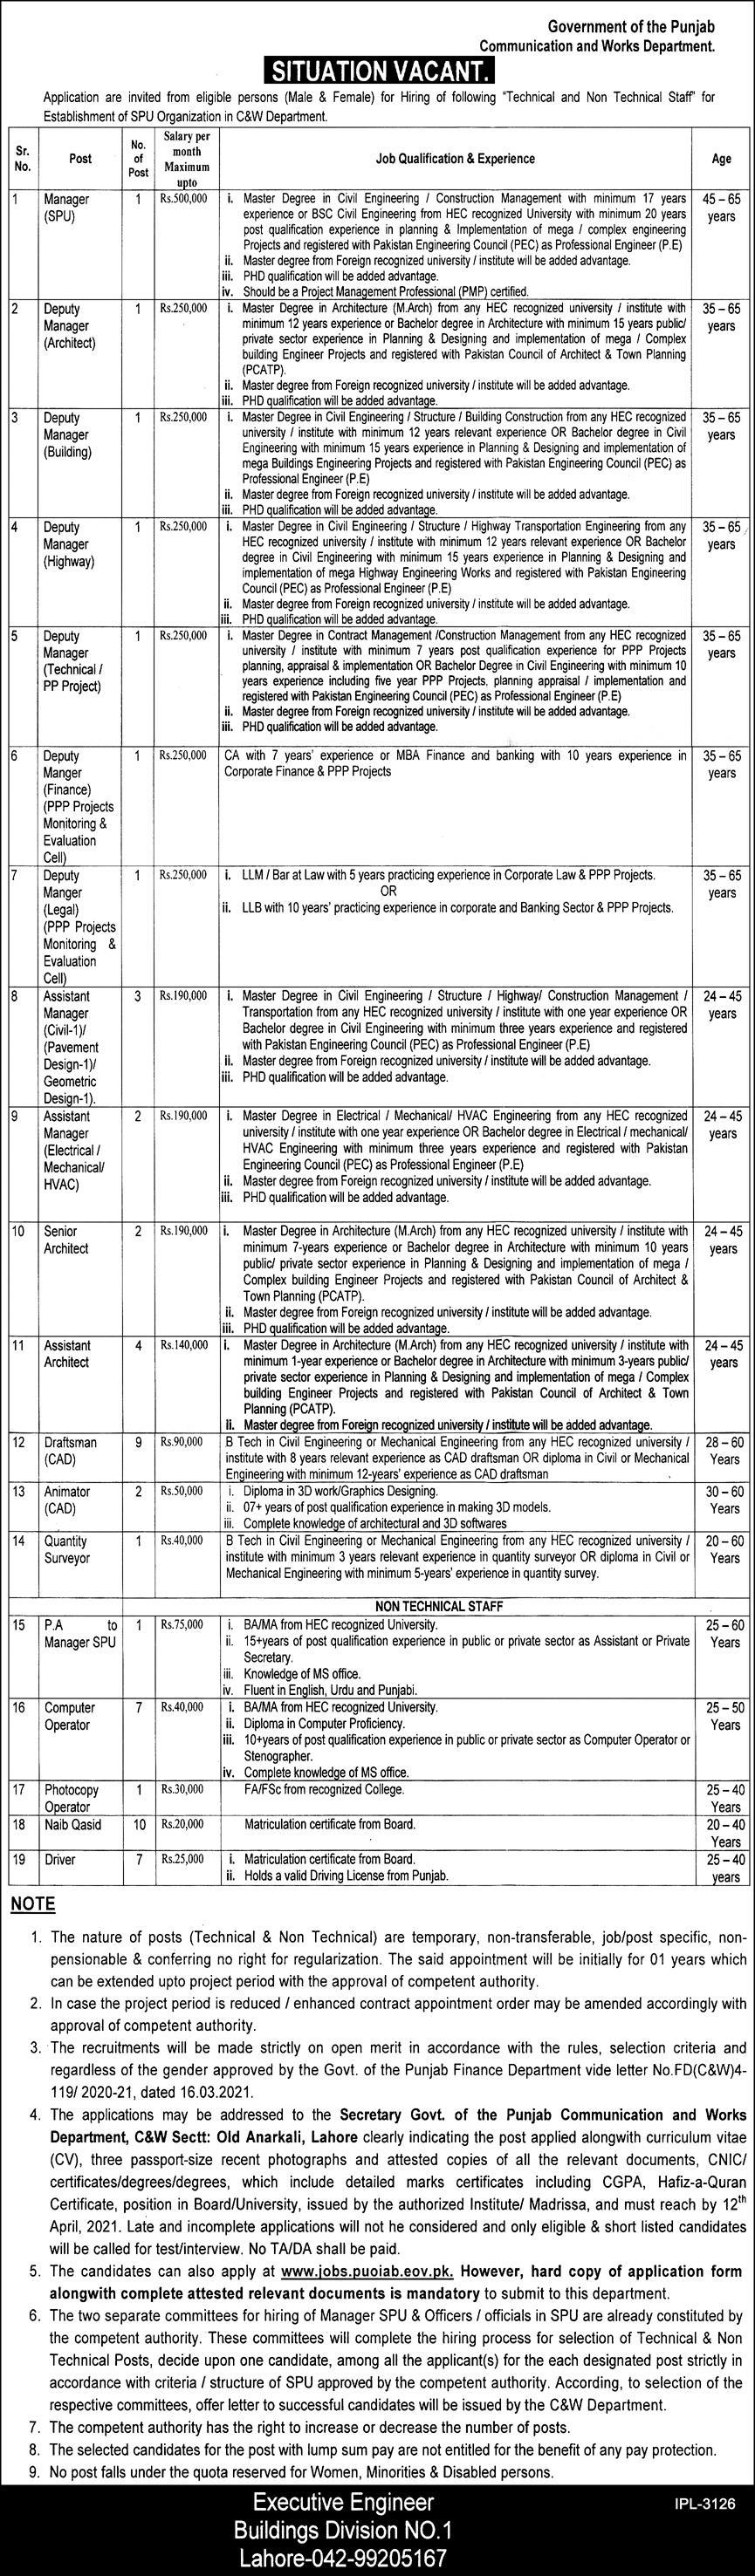 Communication & Works Department jobs newspaper ad for Assistant Architect in Lahore on 2021-04-07